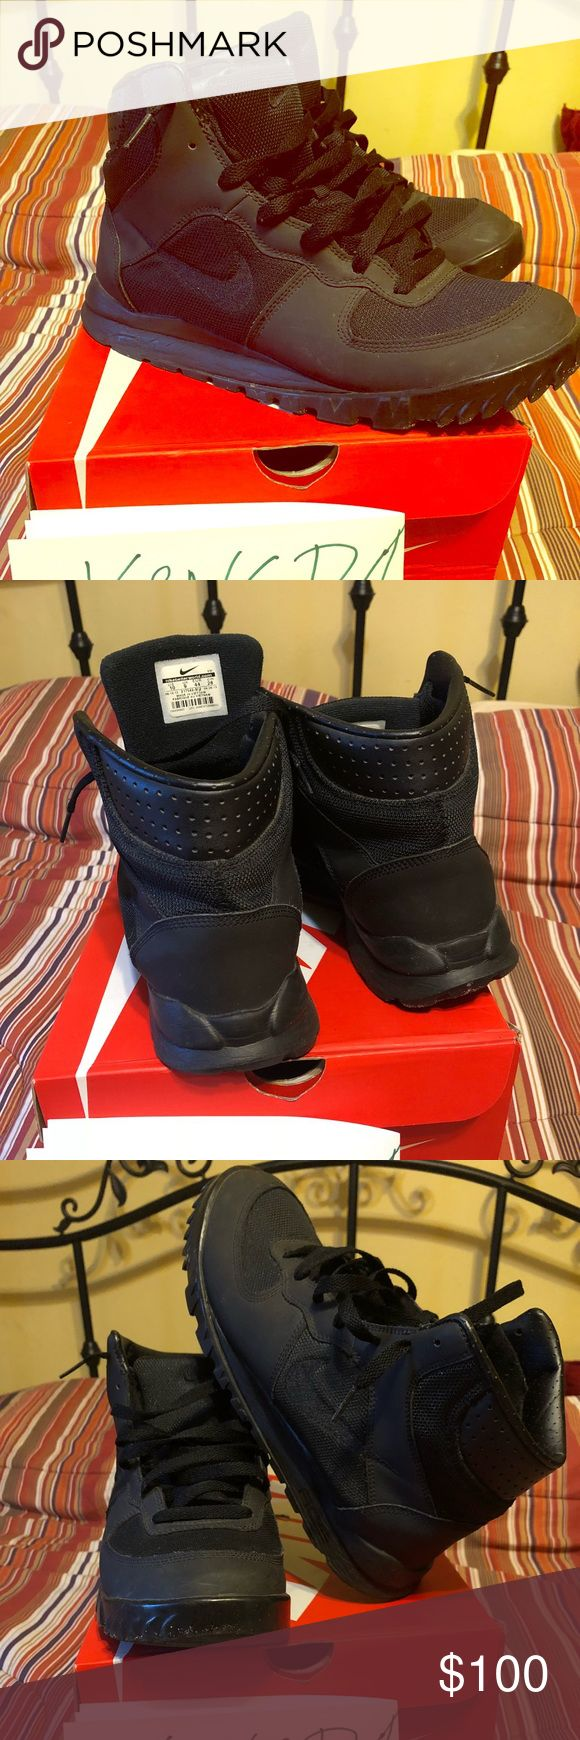 Limited Edition Nike ACG Boots Limited Edition ACGs  Sz 10  Run big  Great condition: 9/10 Nike Shoes Boots